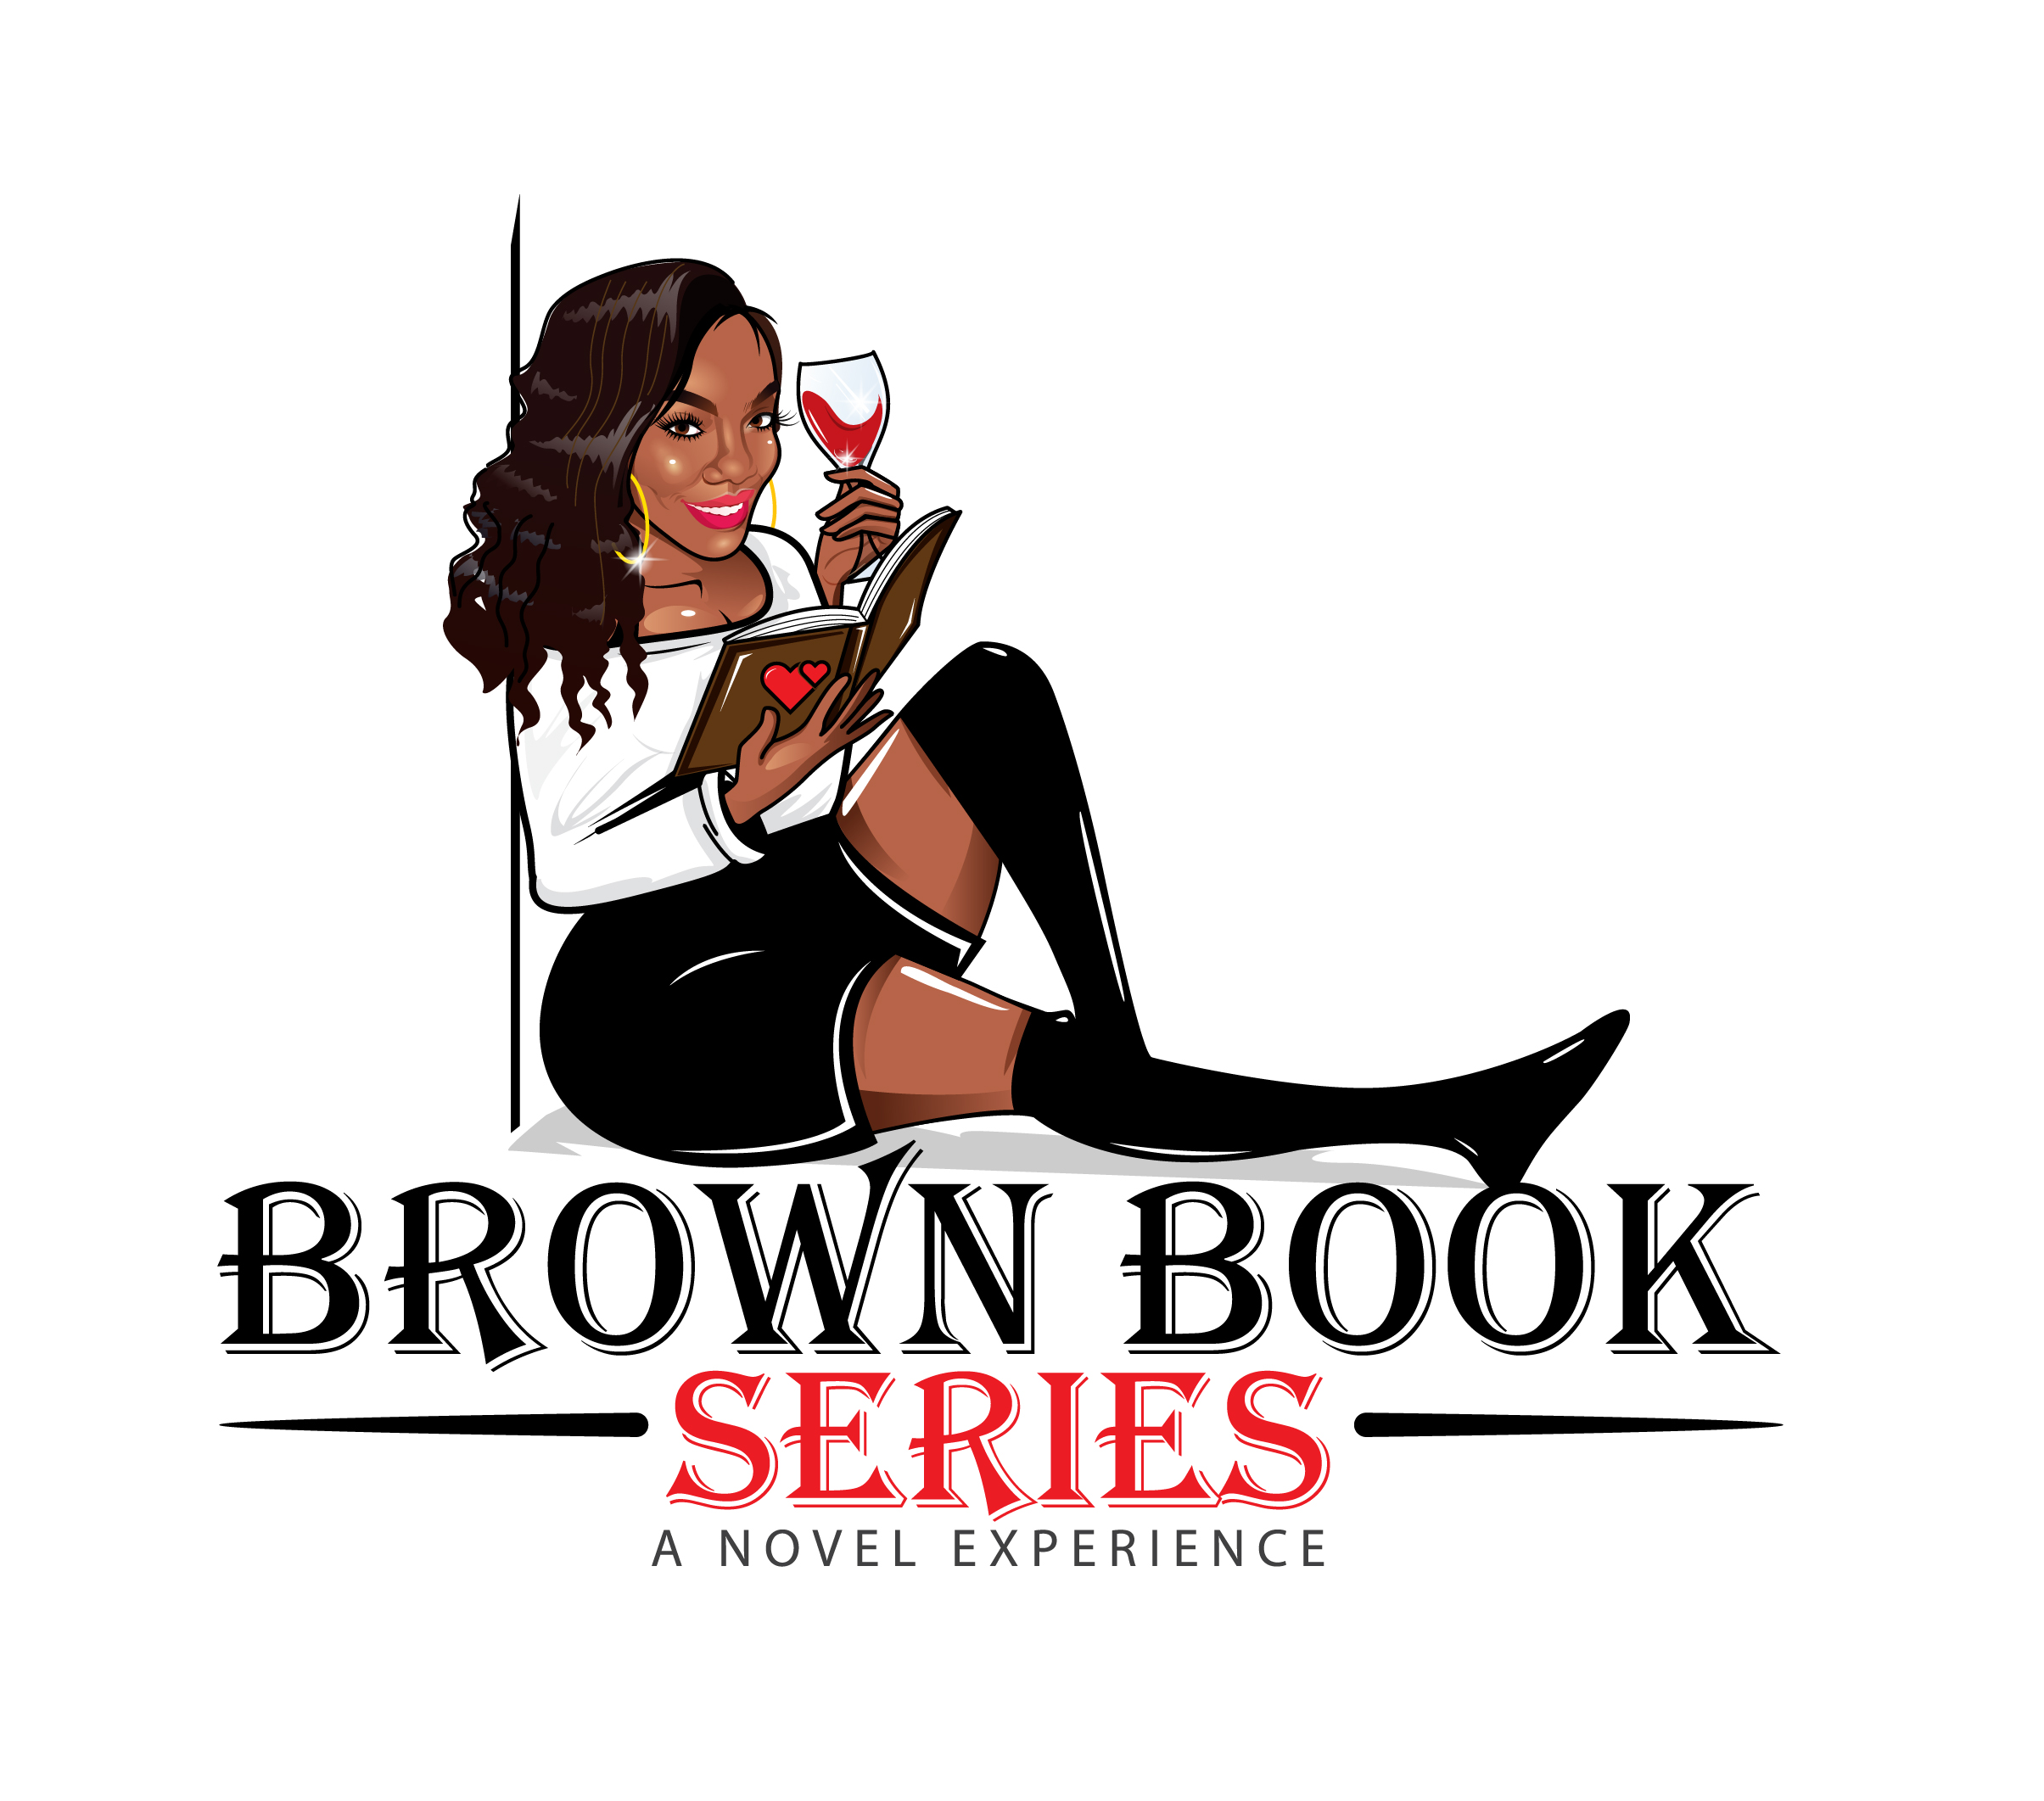 the logo for the brown book series hosted by Shay Baby